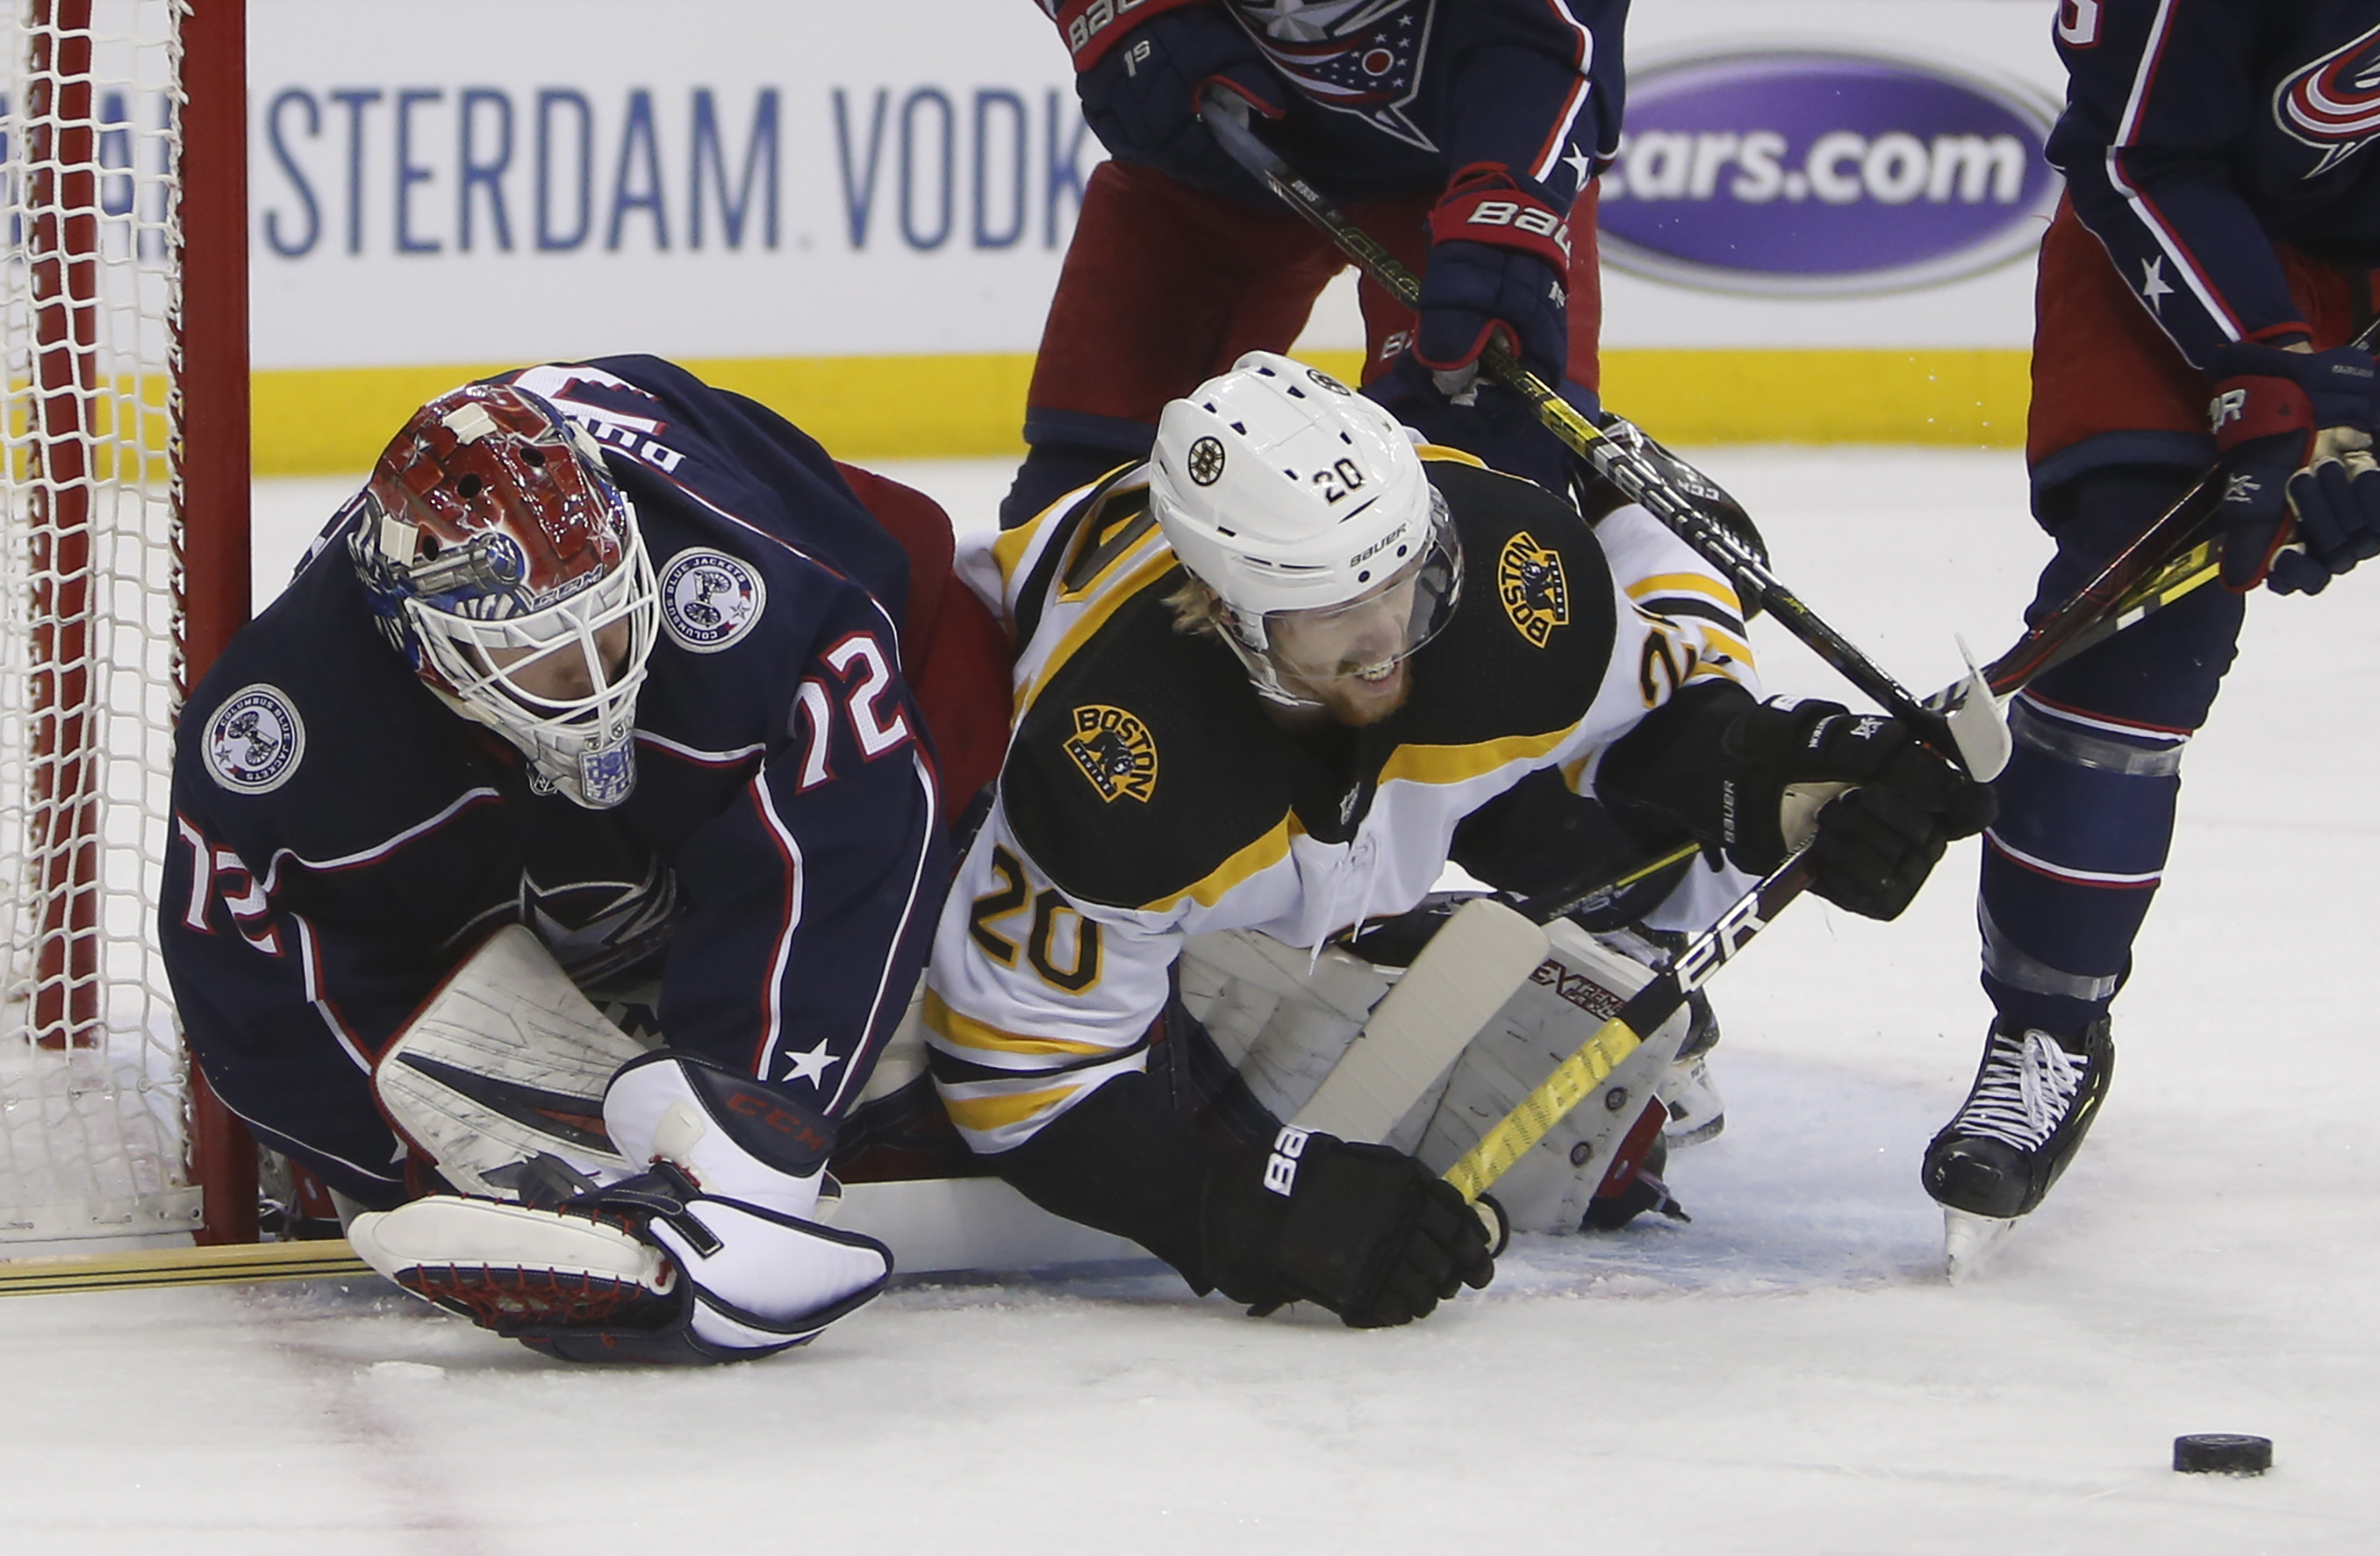 Survey Players Pan Delay Of Game Goalie Interference The Daily